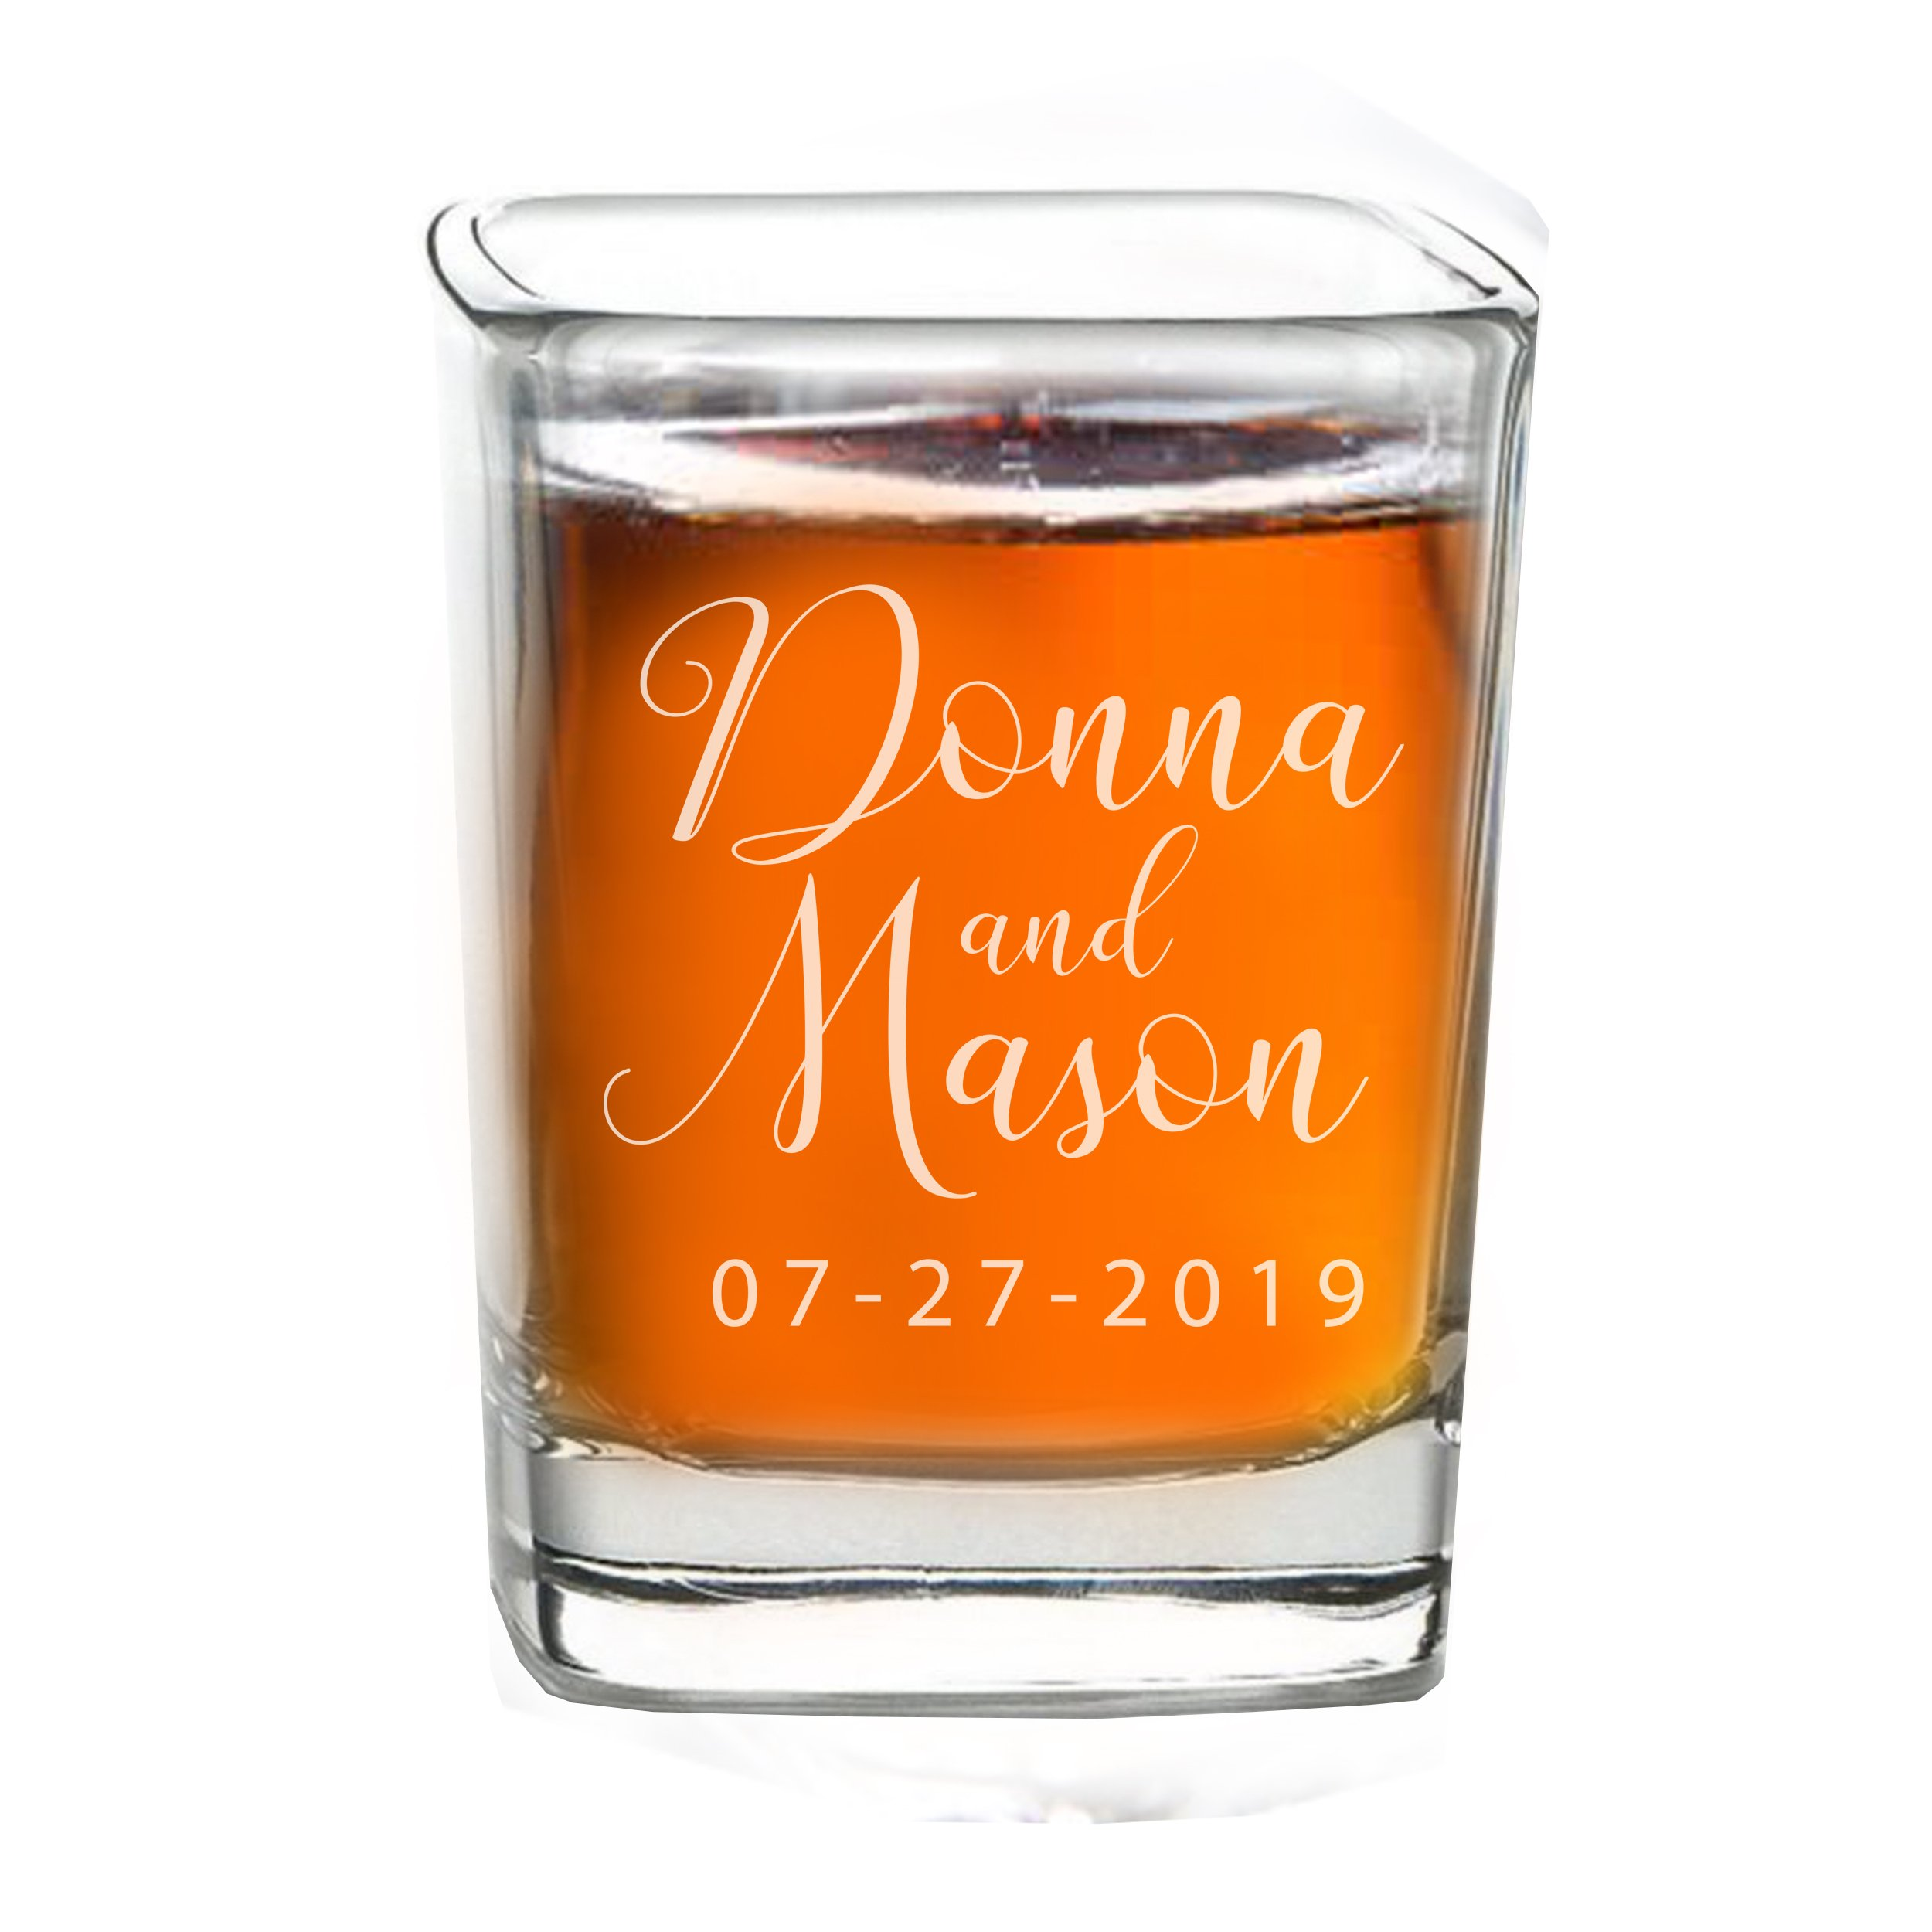 Personalized Shot Glass Wedding Favors - Custom Engraved Take a Shot We Tied the Knot Shot Glasses, Gift for Guests, Couples, Engagement (10)